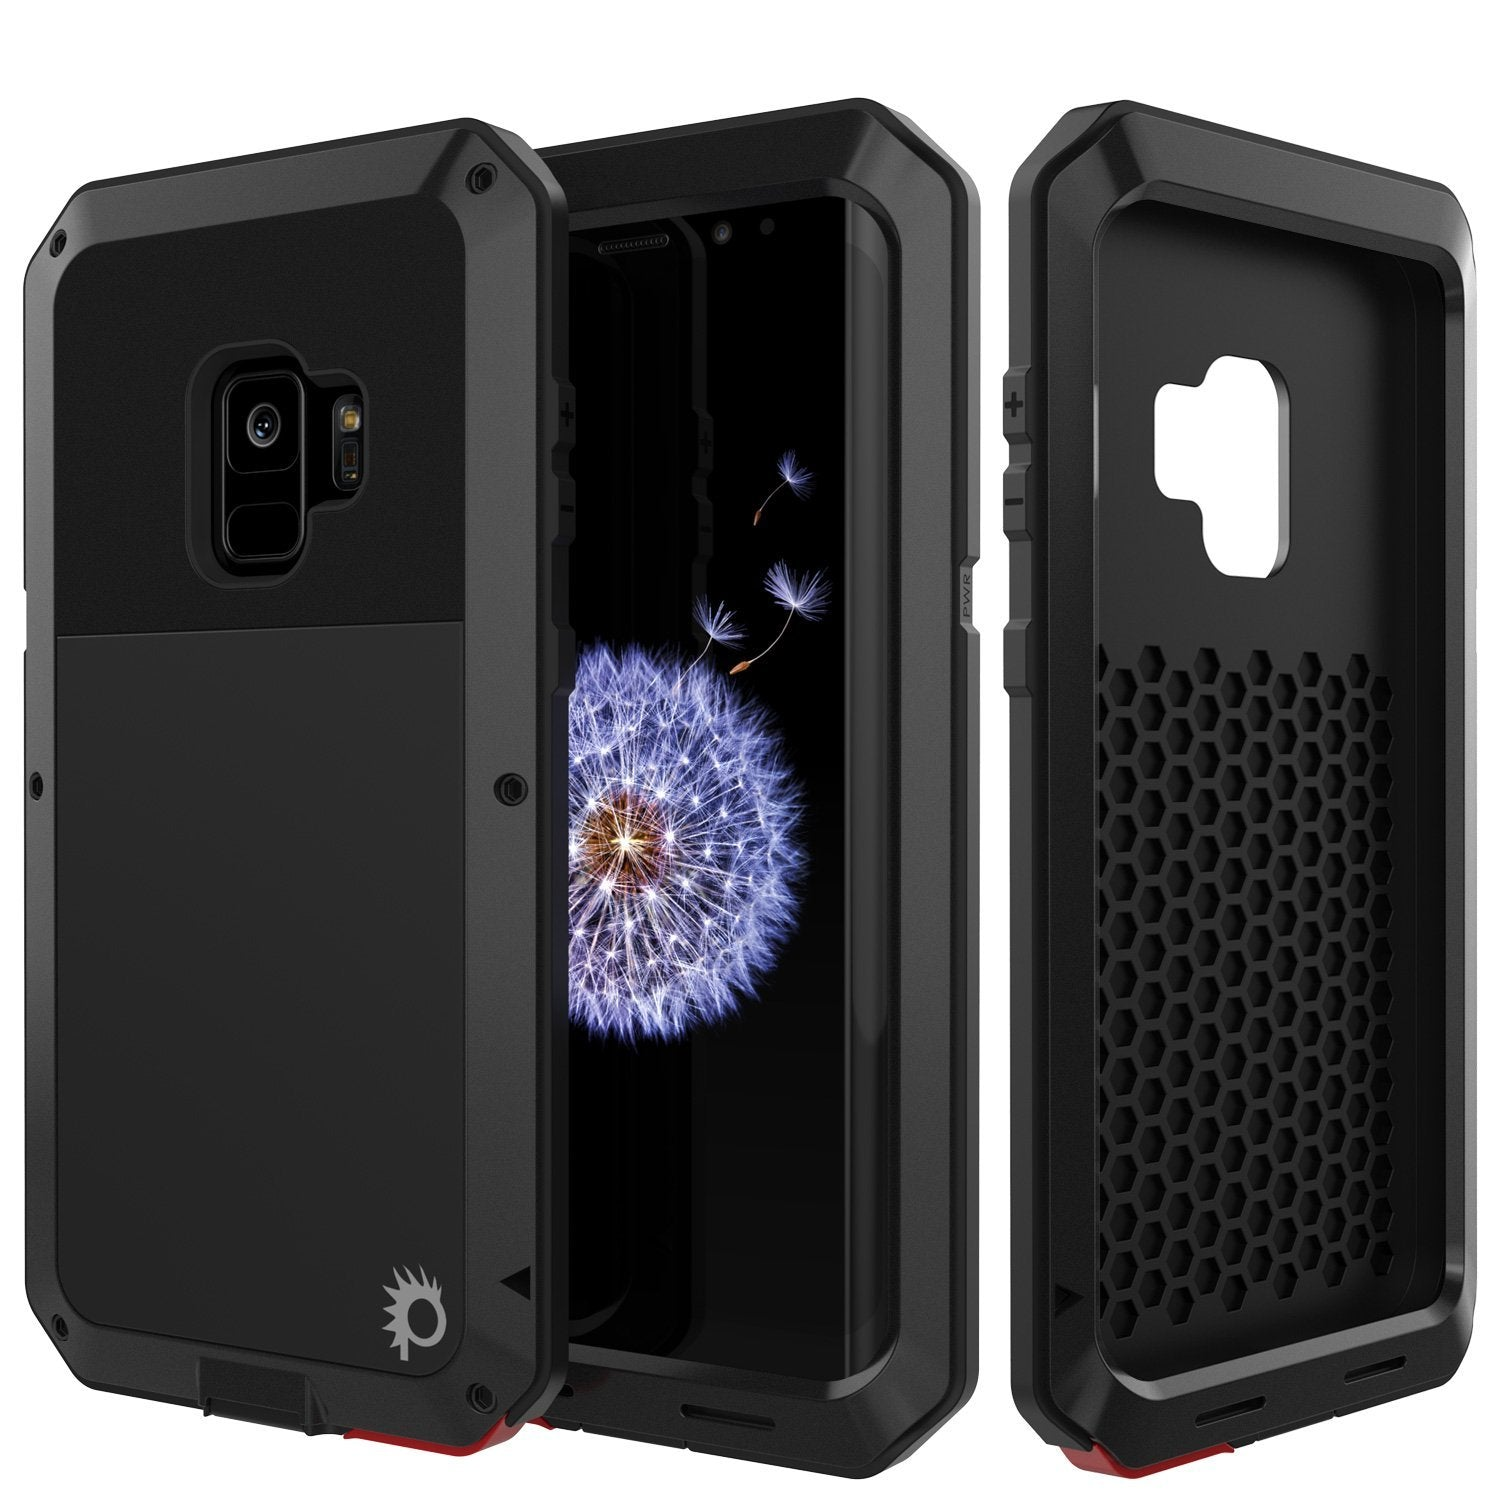 Galaxy S10e Metal Case, Heavy Duty Military Grade Rugged Armor Cover [Black]